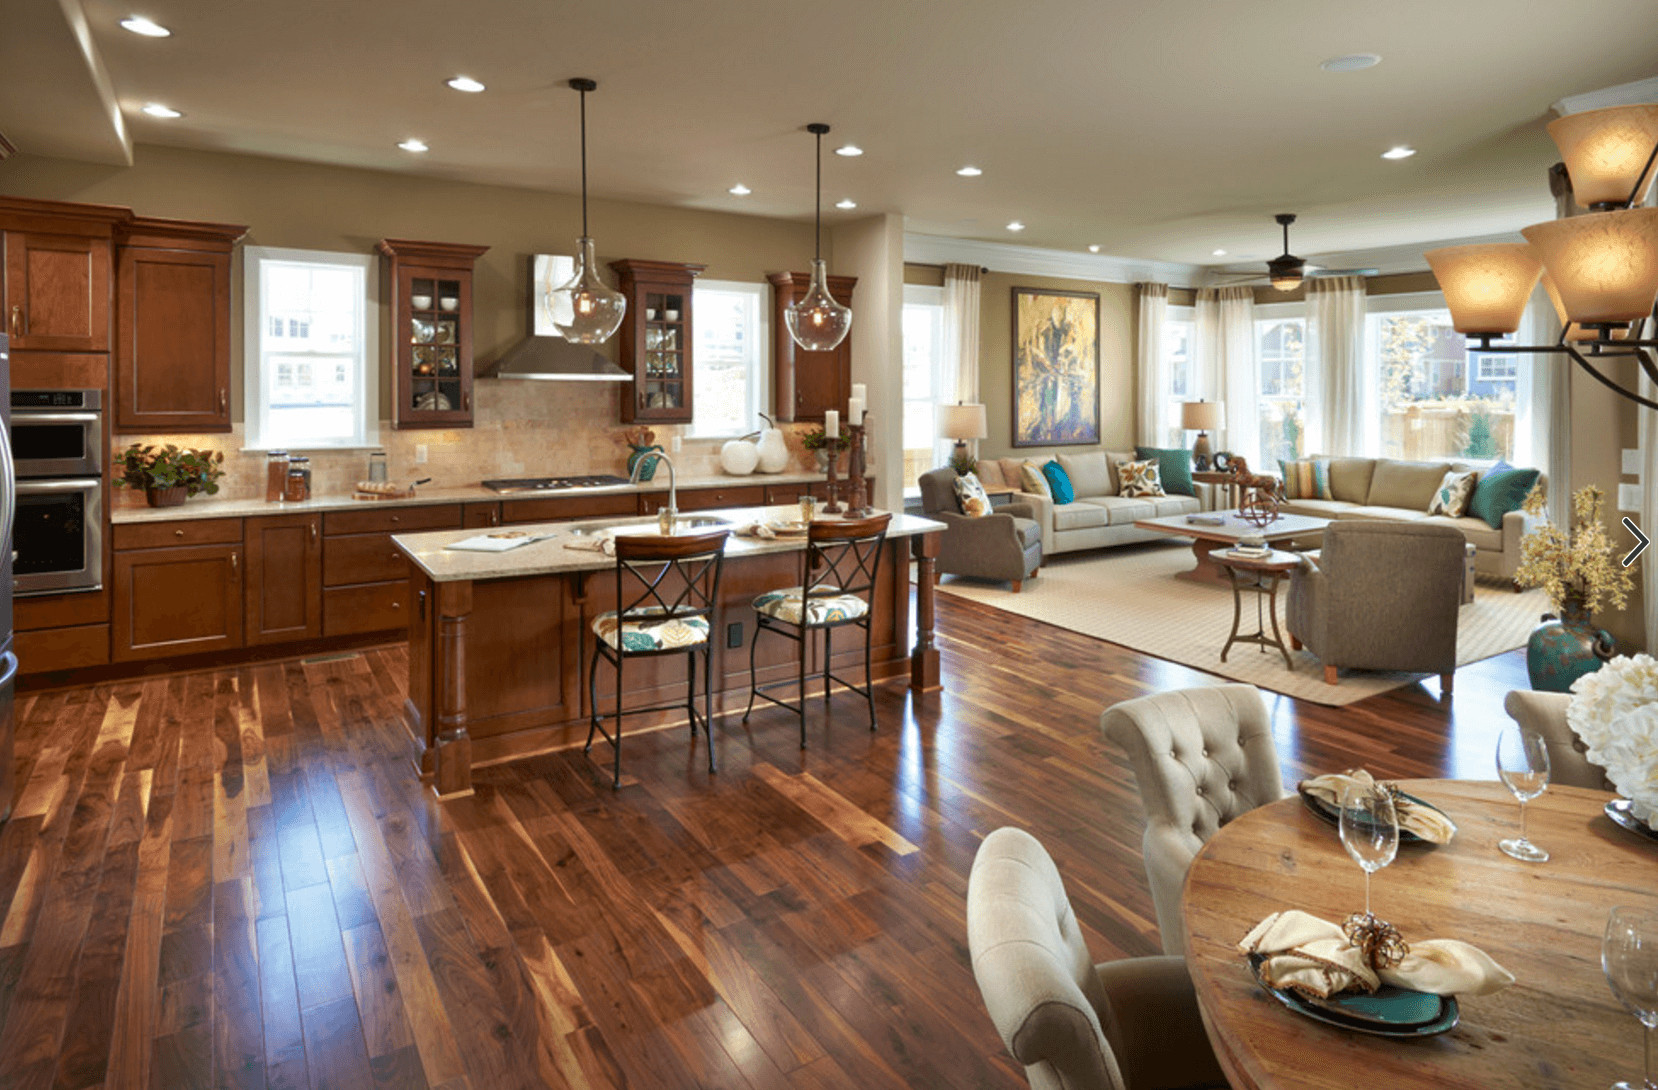 discount hardwood flooring atlanta ga of gleaming wood flooring ties the space together 6 great reasons to inside gleaming wood flooring ties the space together 6 great reasons to love an open floor plan